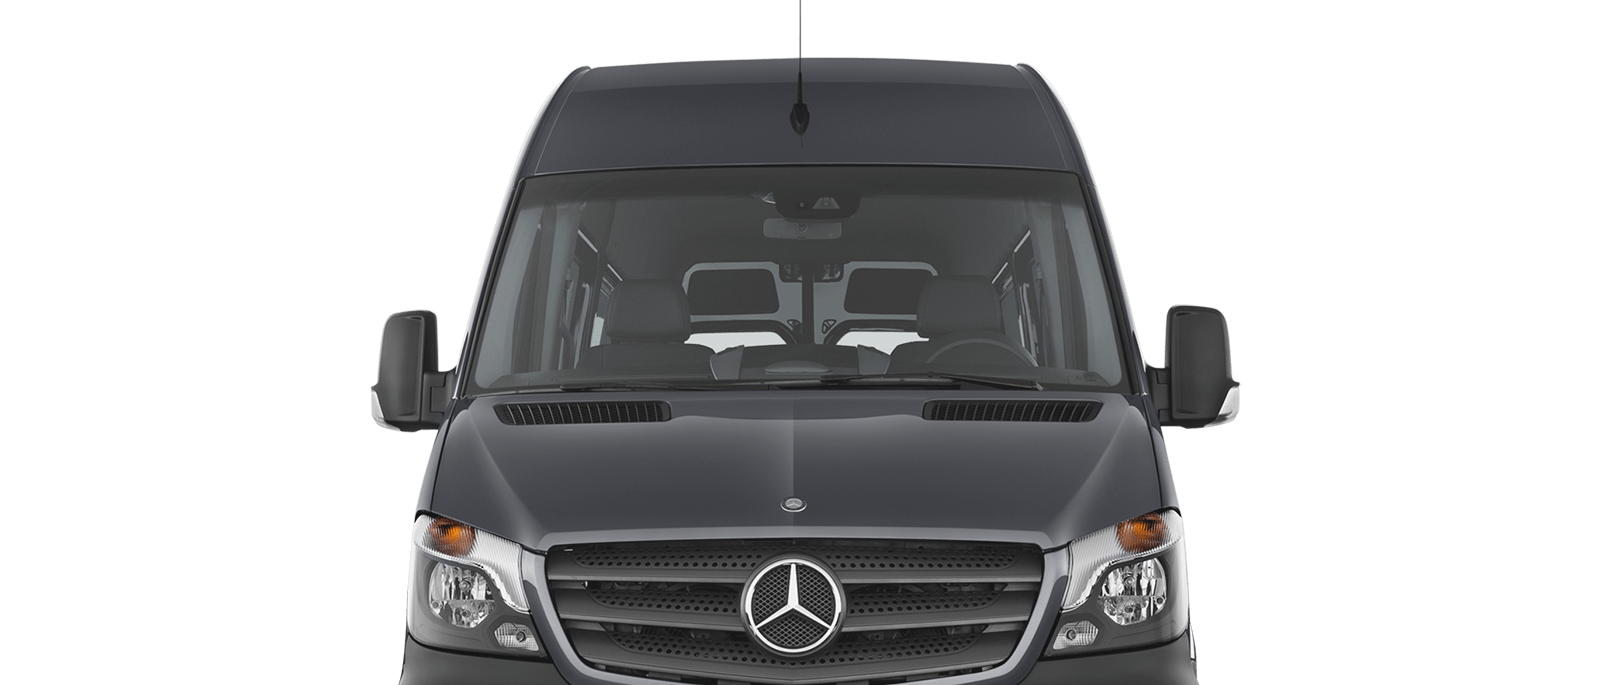 Mercedes benz sprinter van car rental exotic car for Mercedes benz sprinter rental